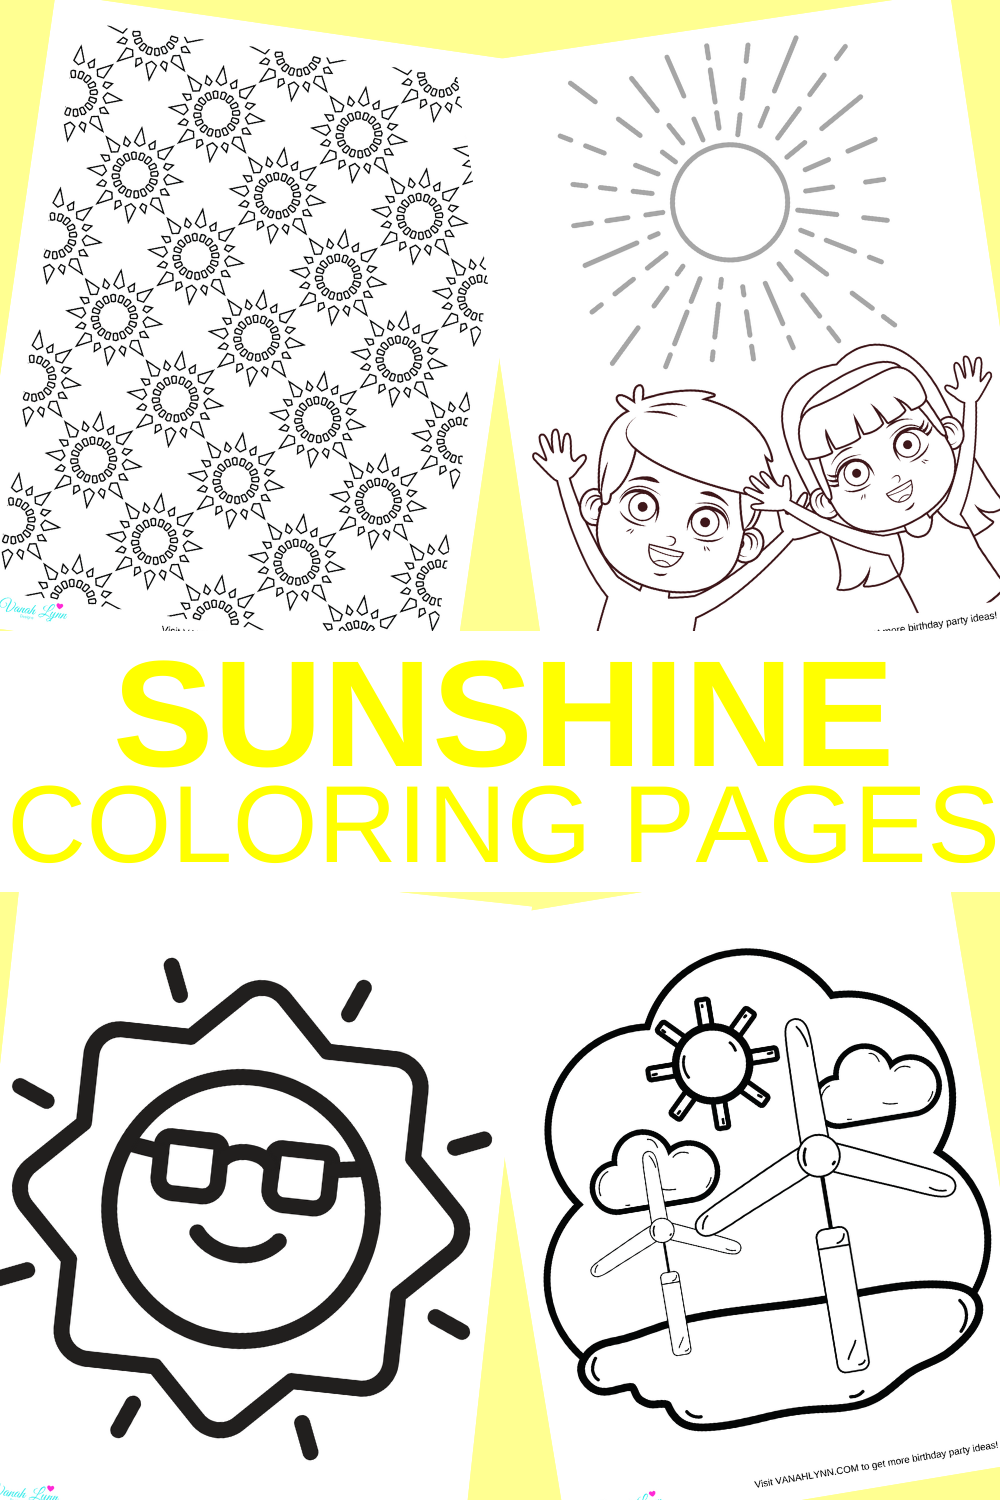 sunshine activity sheet for a toddlers birthday party